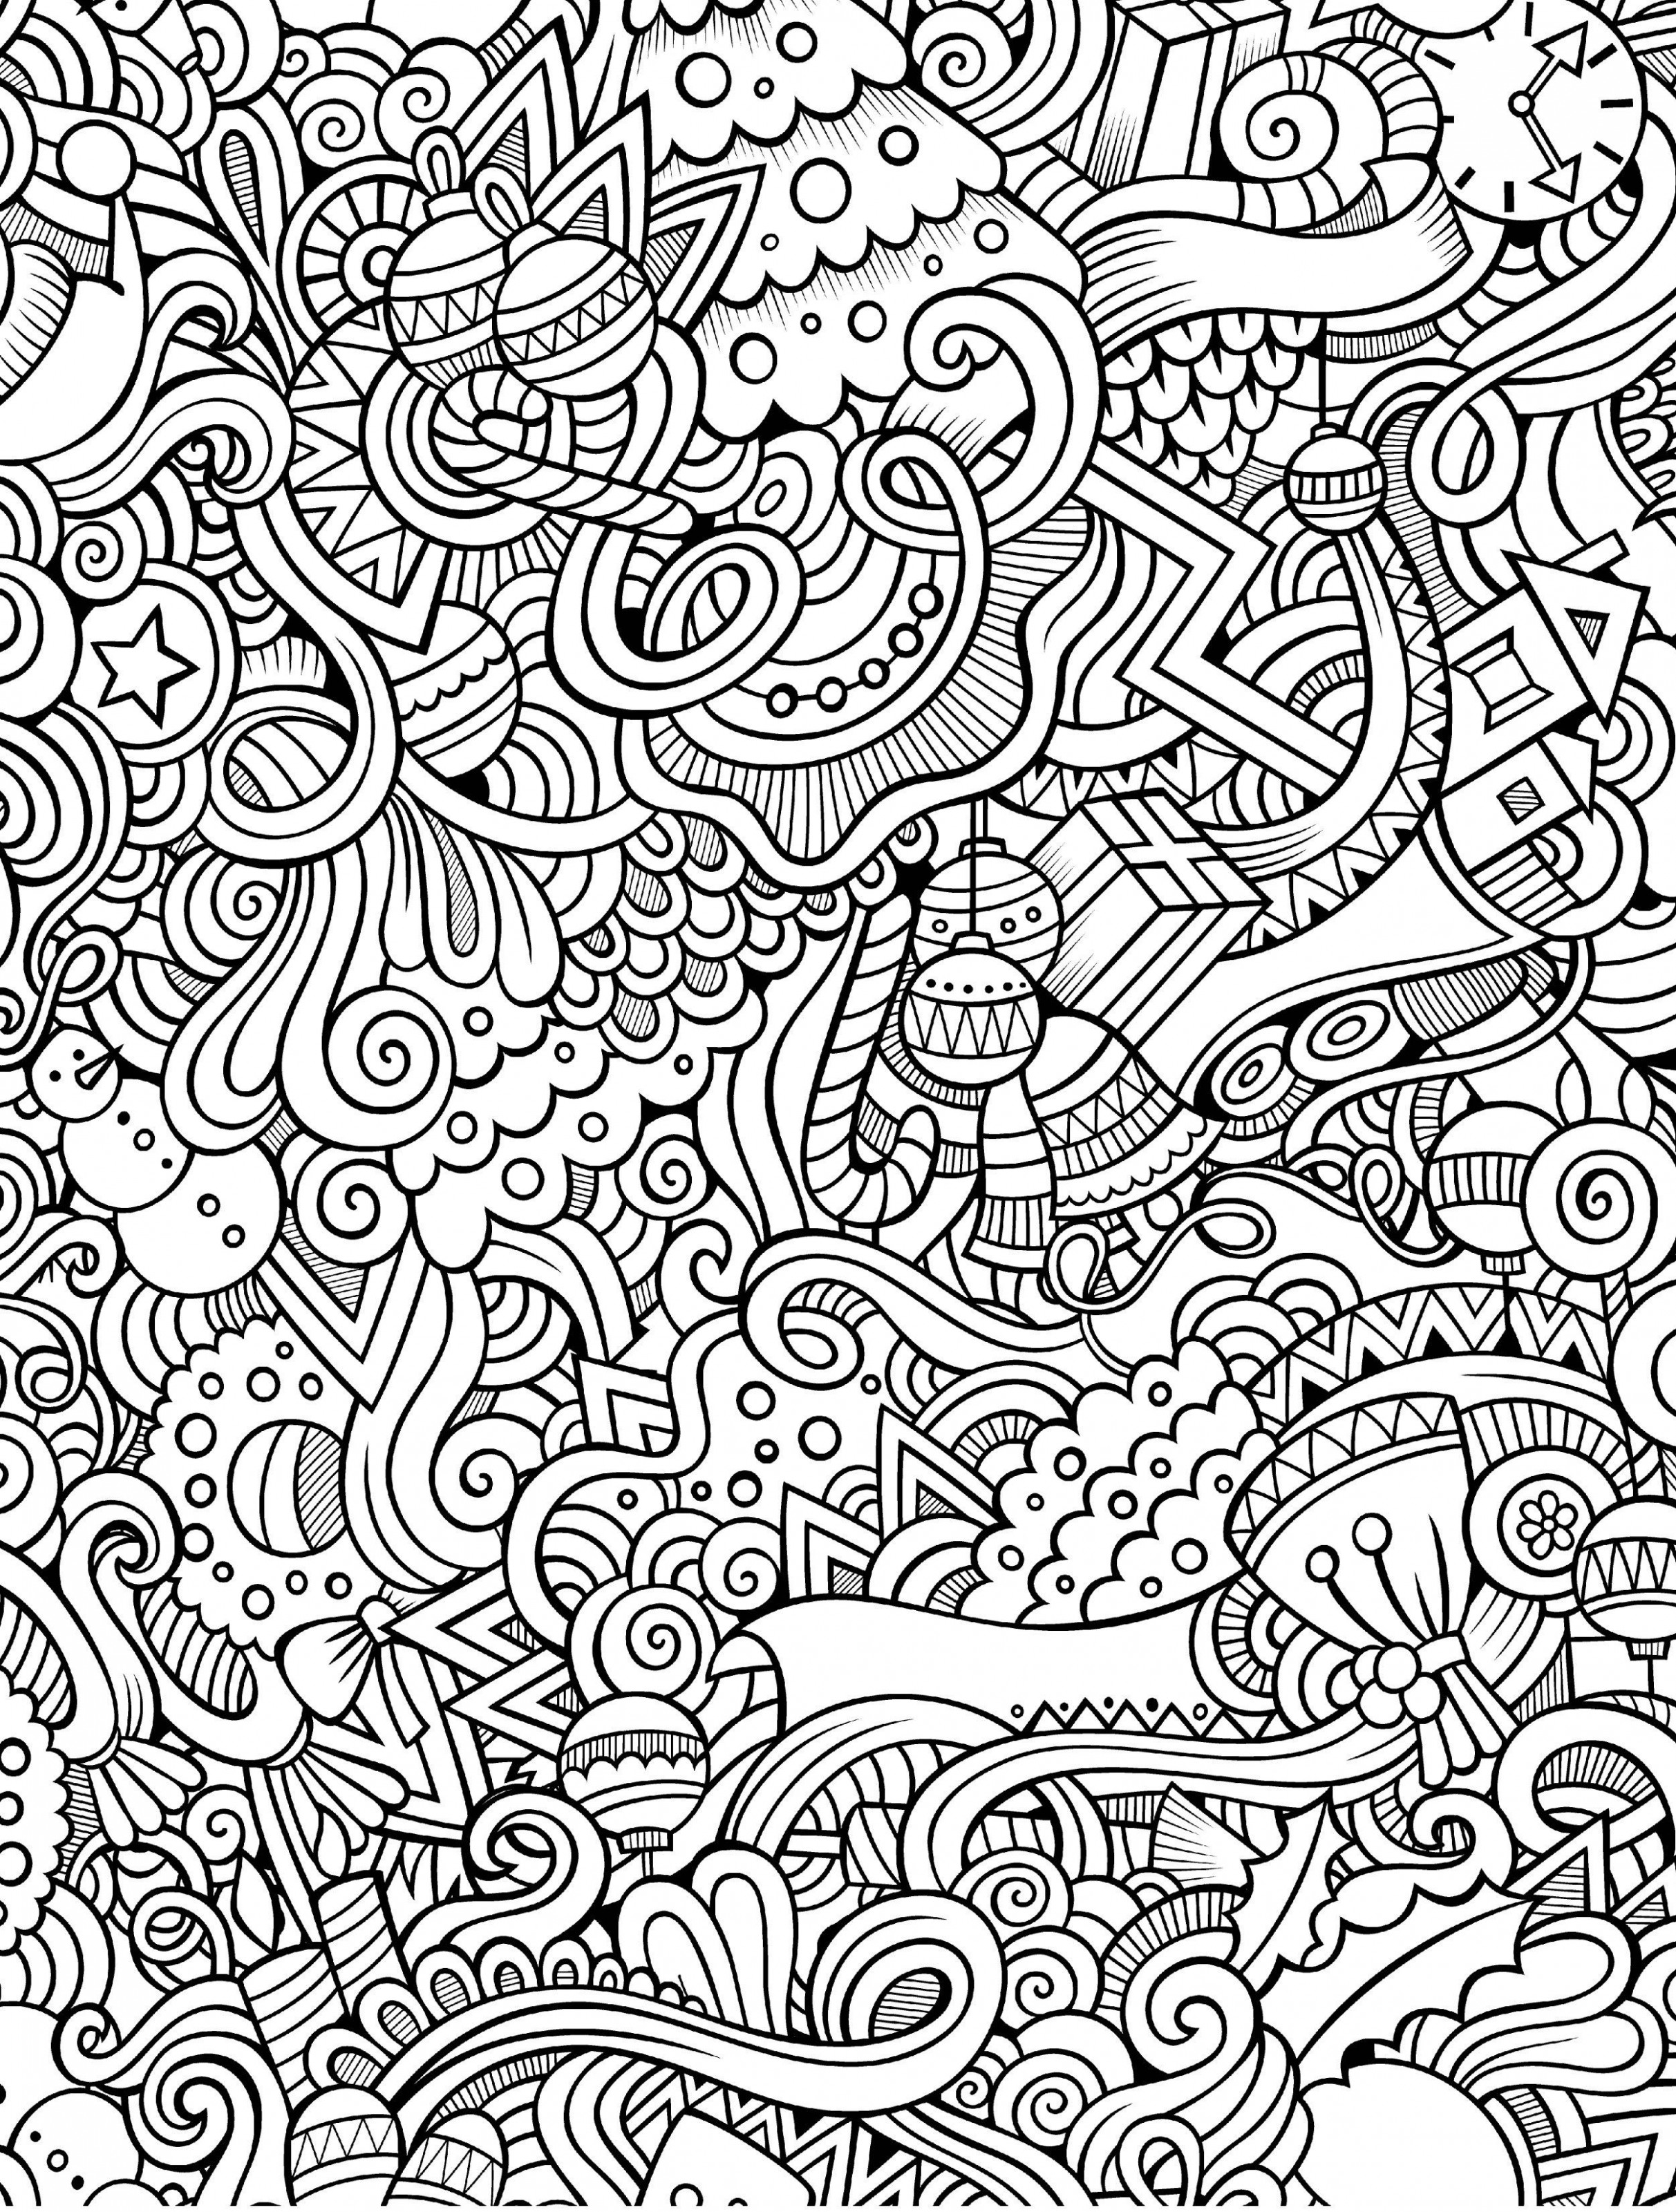 13 Free Printable Holiday Adult Coloring Pages | Coloring pages ..